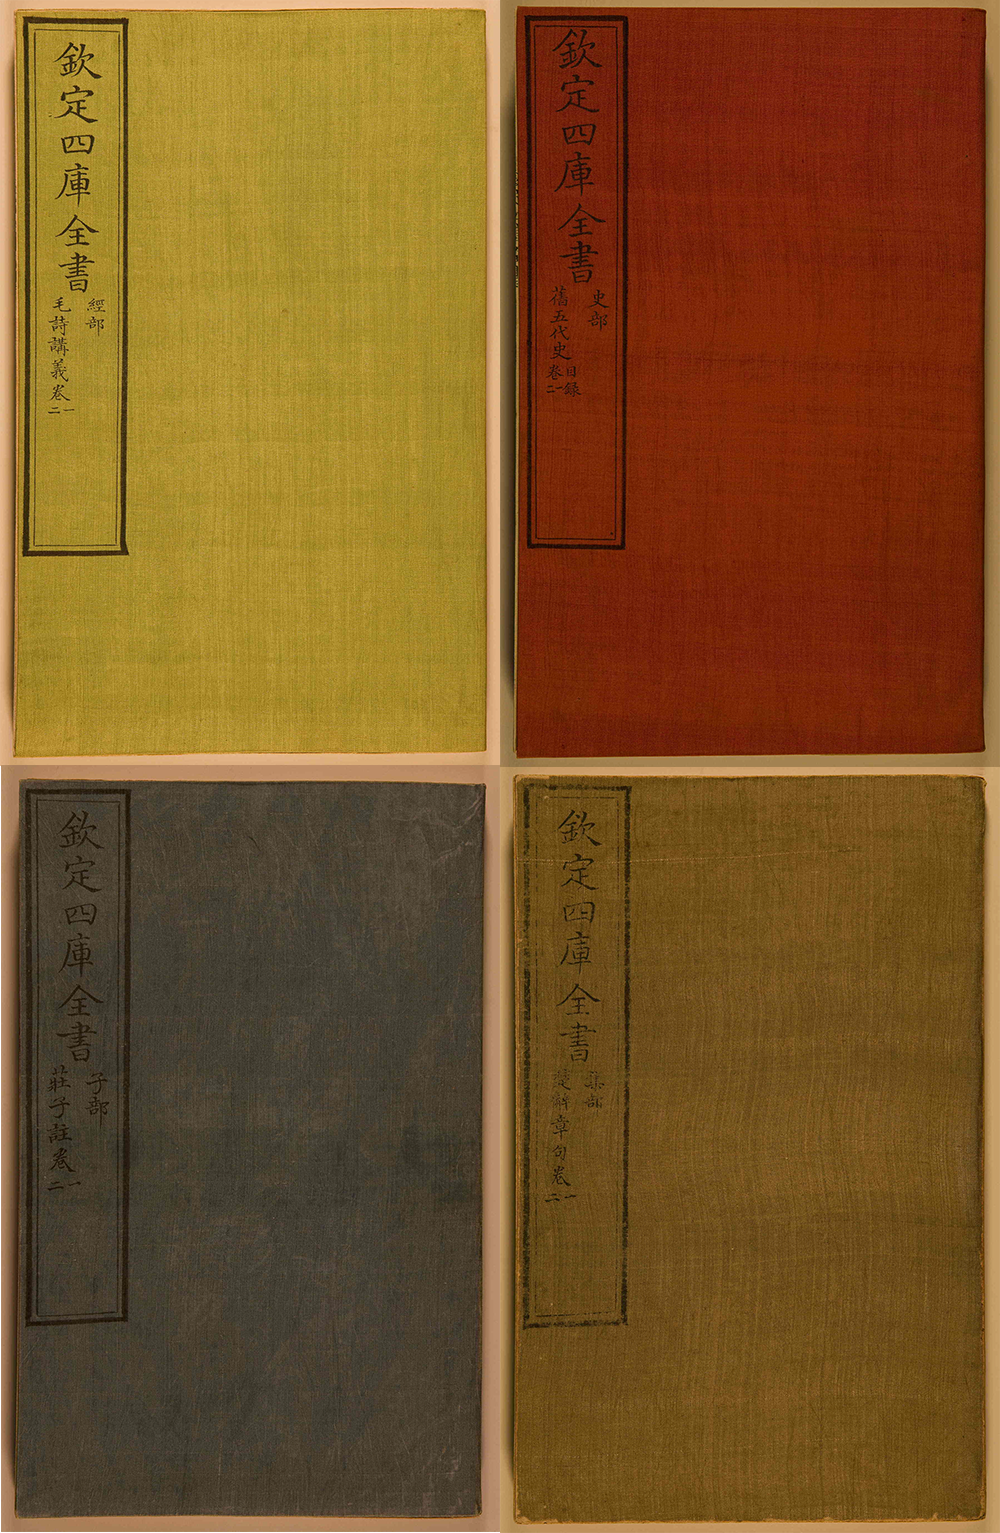 Four volumes of the Wenjin ge edition of the Siku Quanshu. World Digital Library, National Library of China.